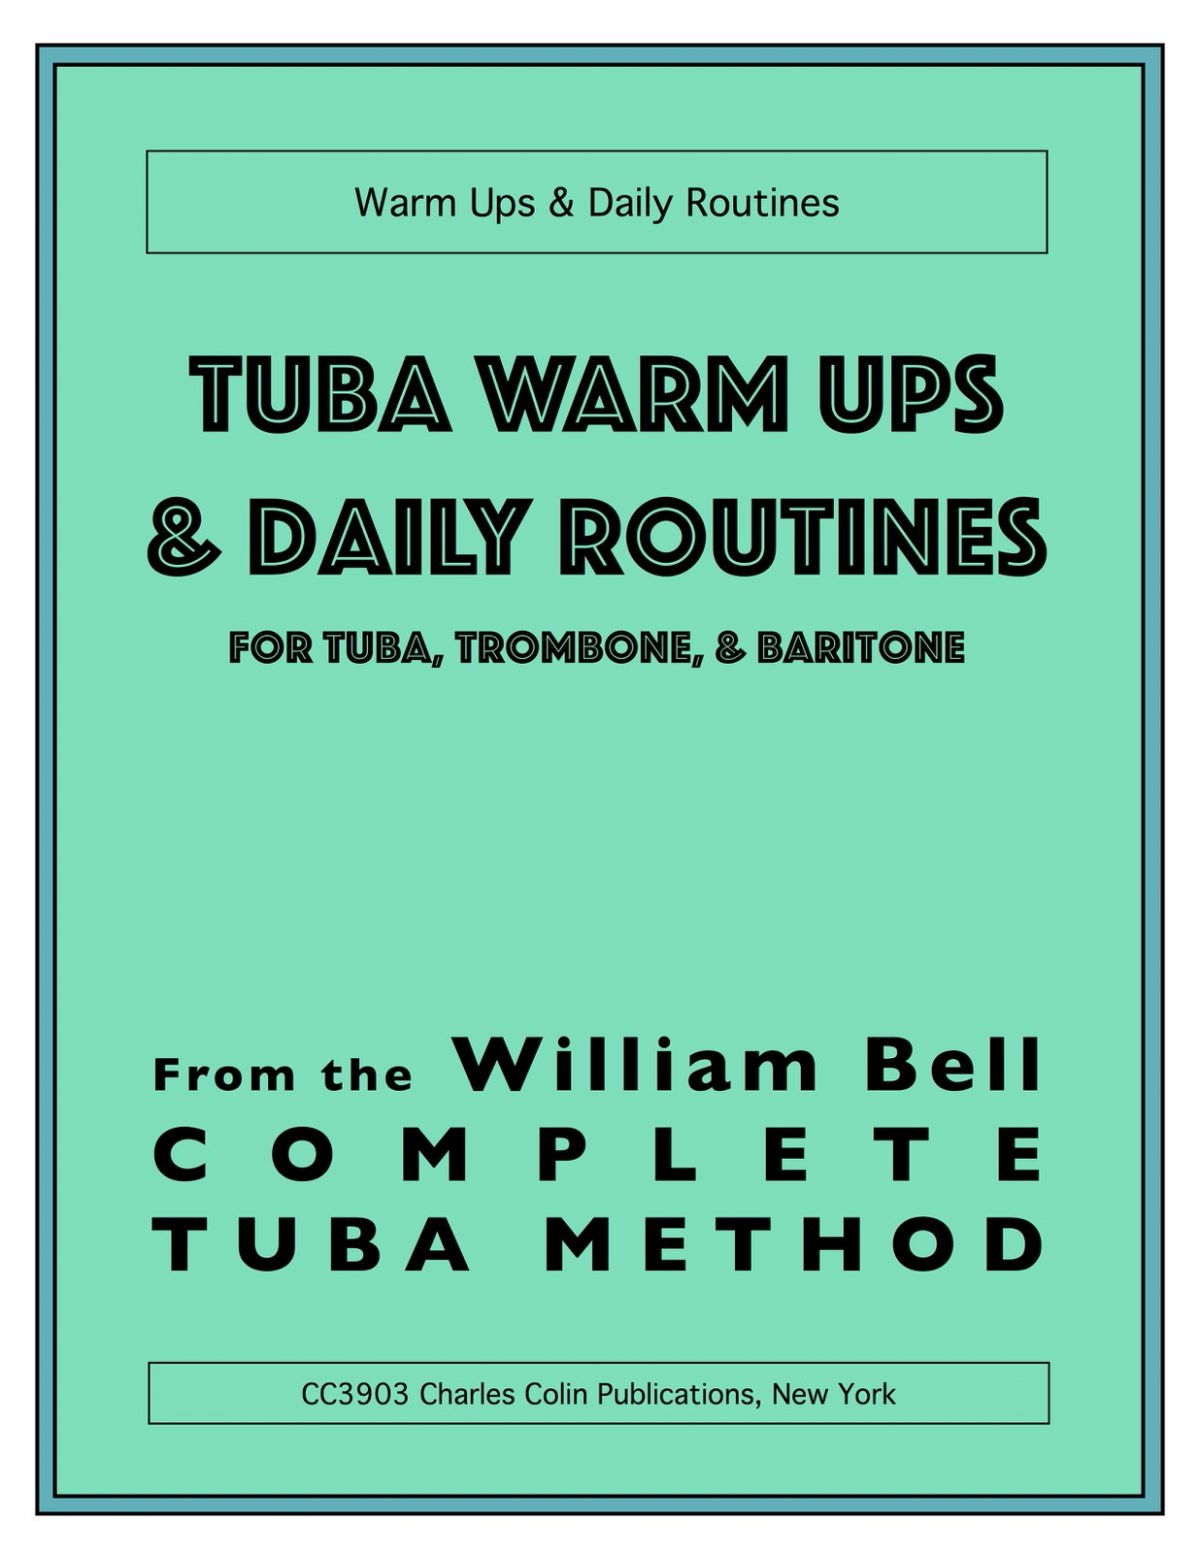 Warm Ups & Daily Routines